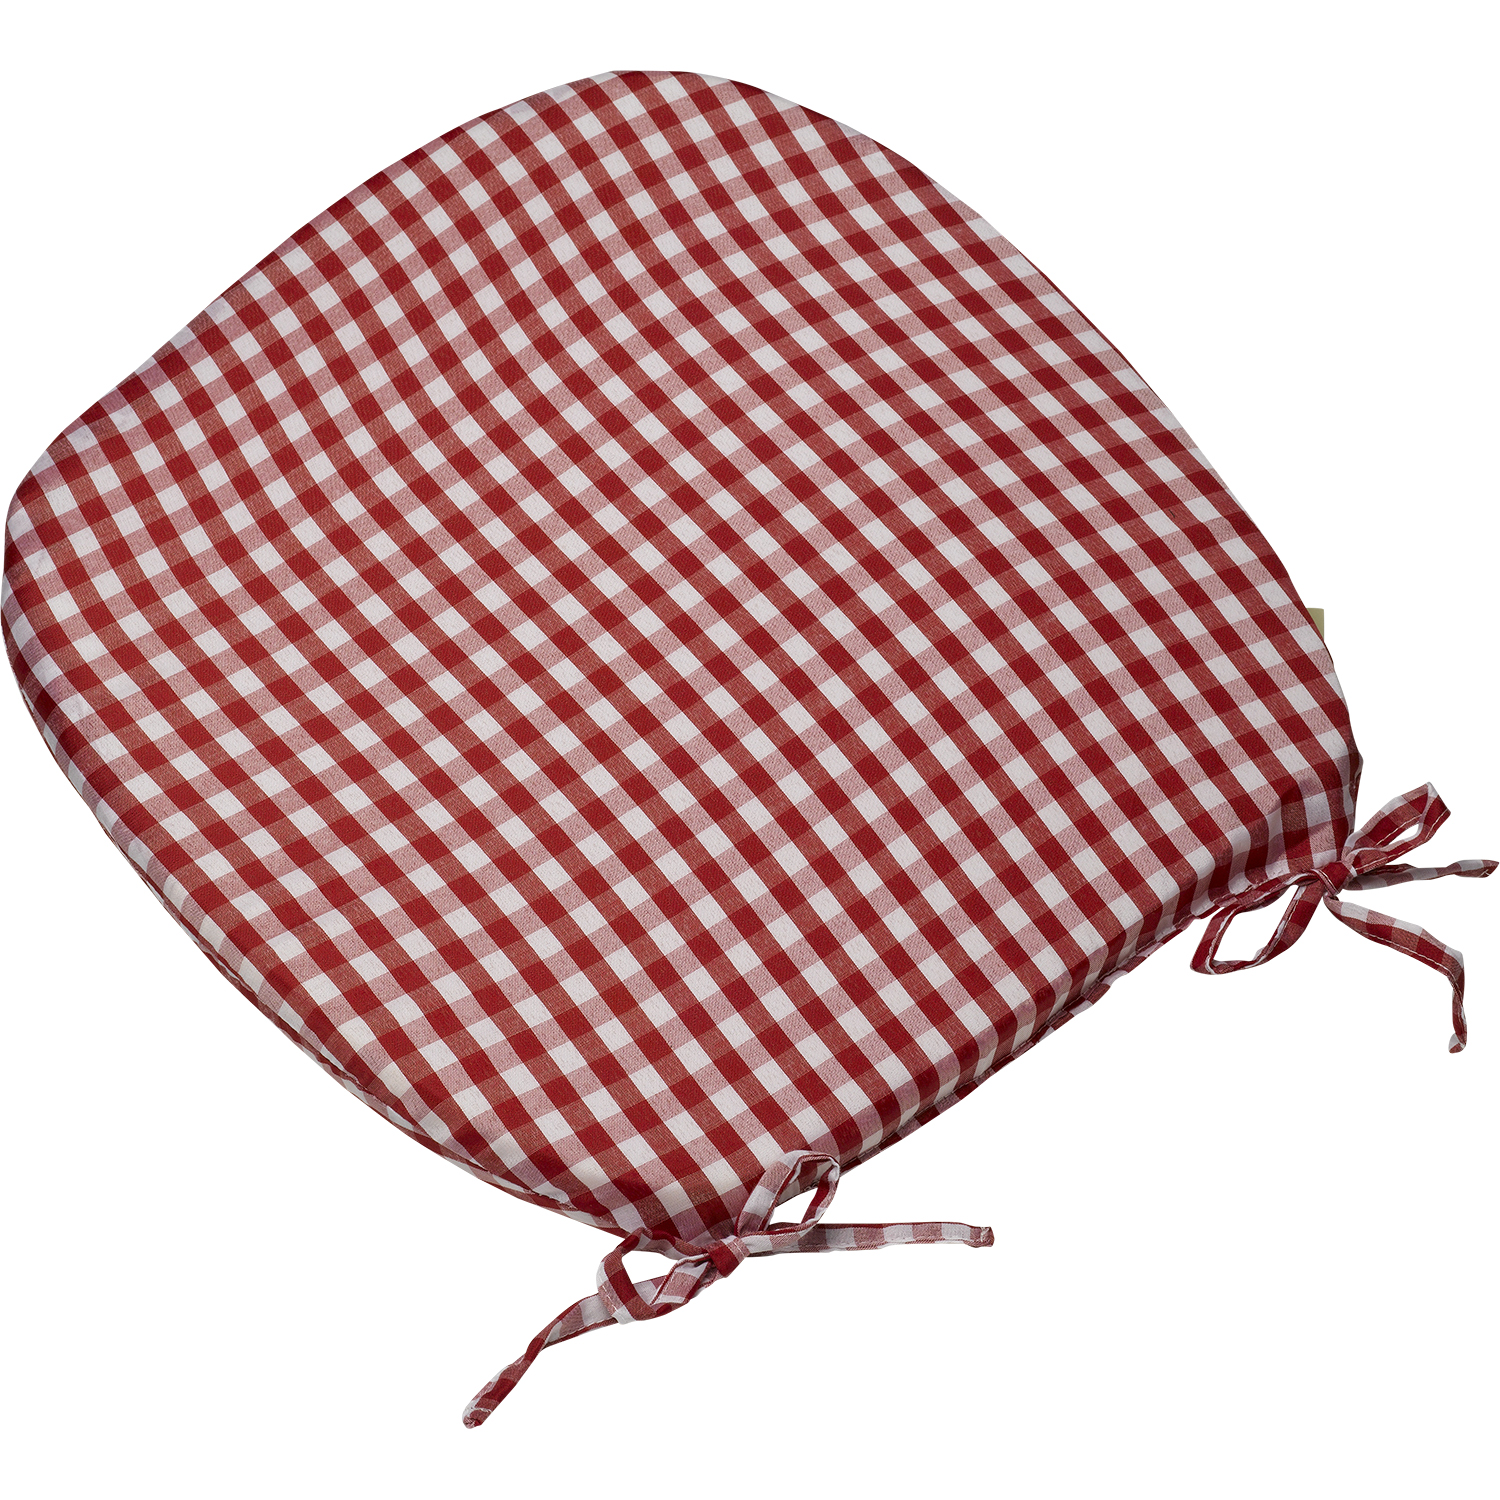 16 round chair cushions pool chaise lounge chairs gingham check tie on seat pad quot x kitchen outdoor